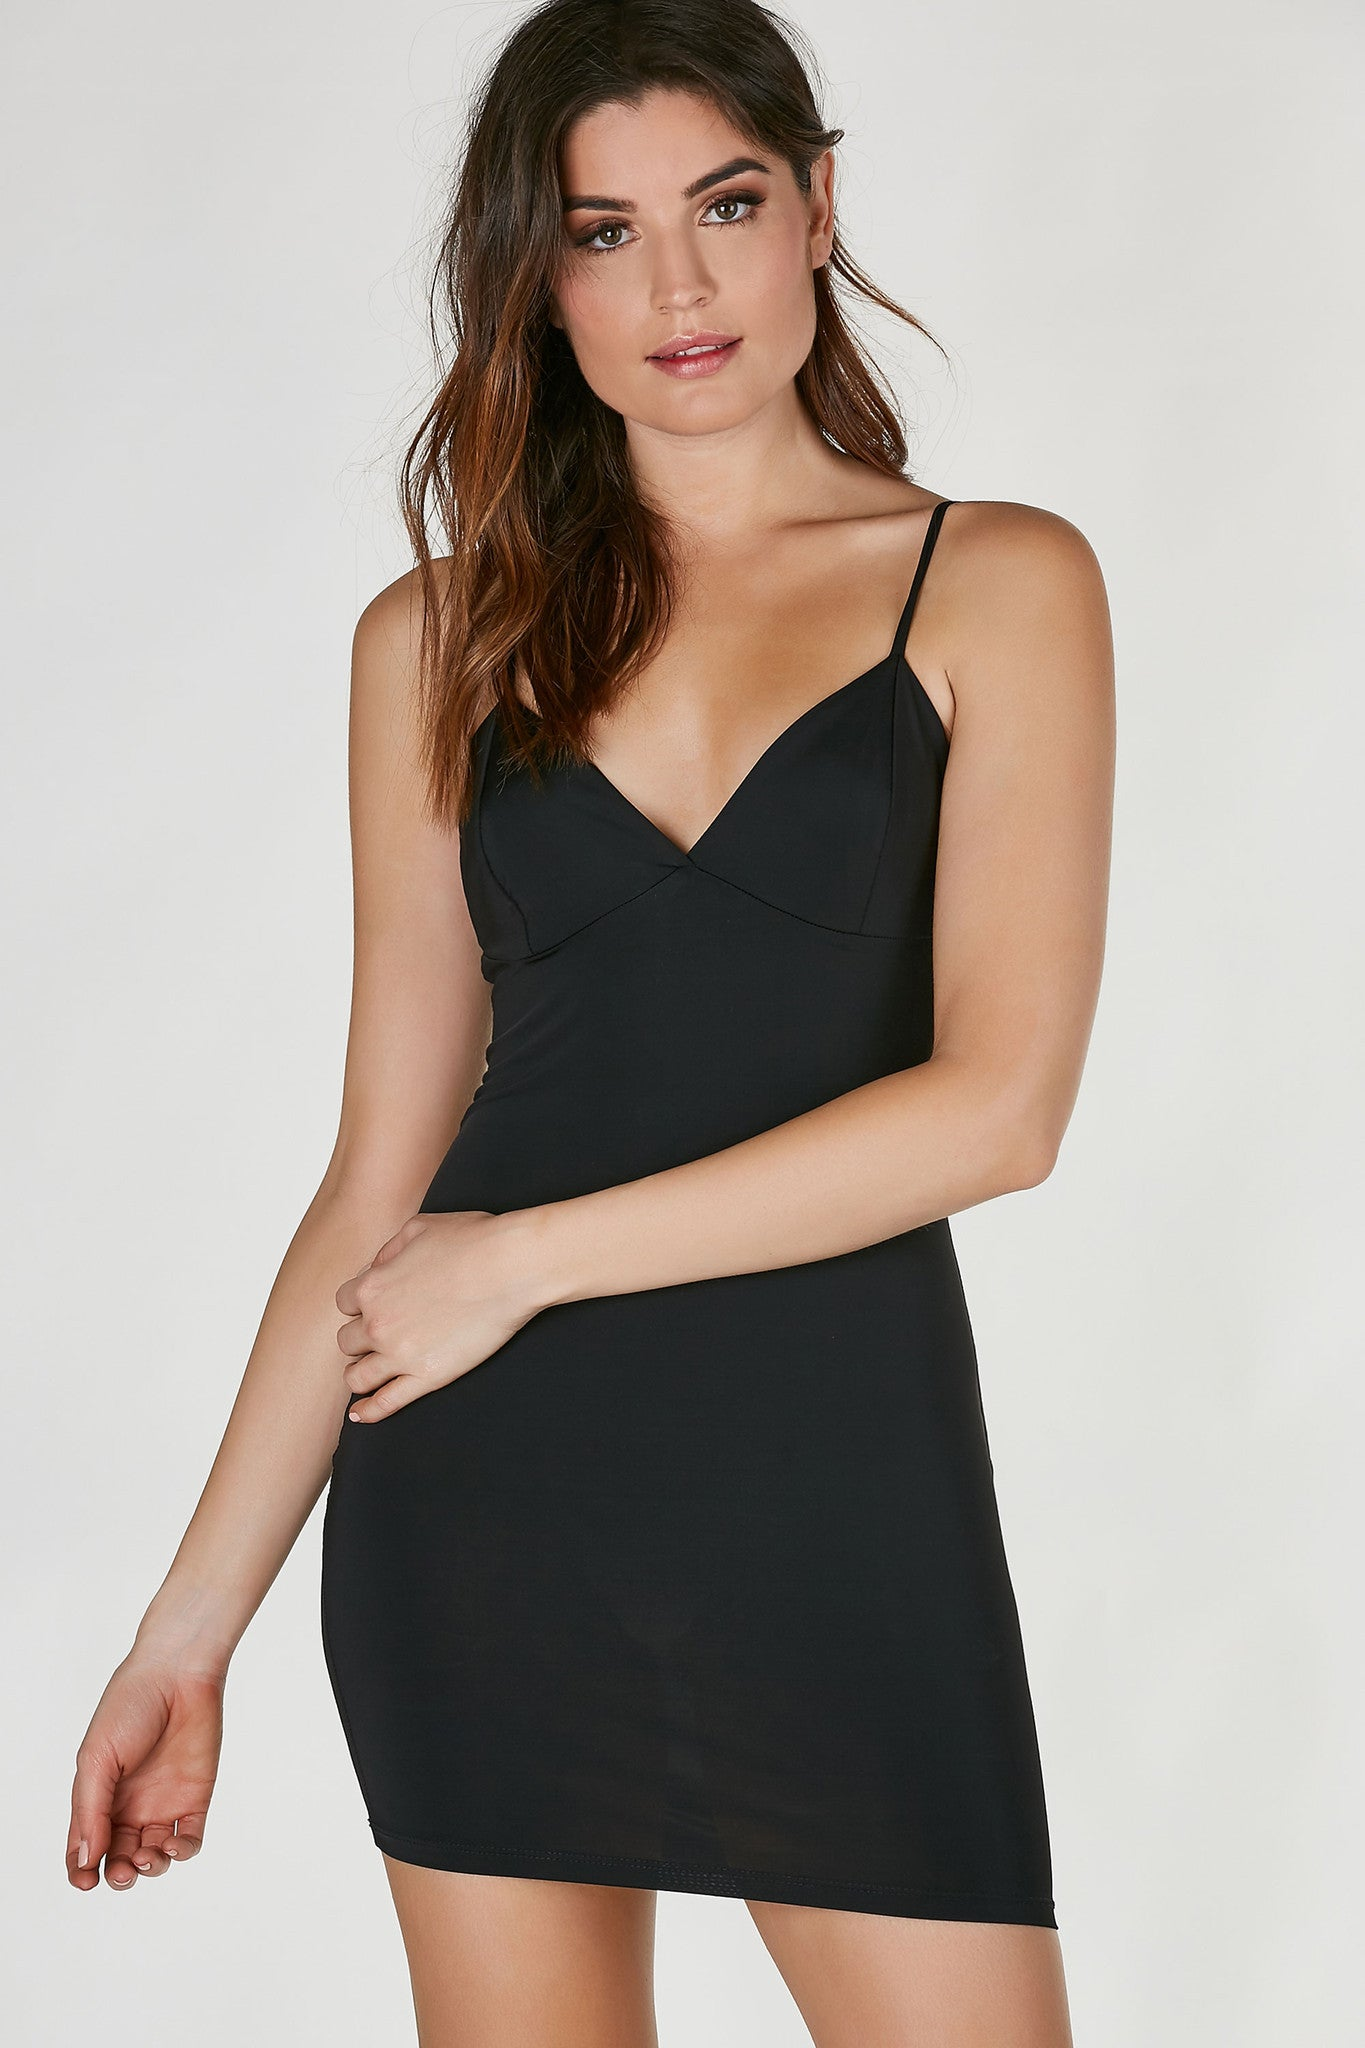 Slinky sleeveless mini dress with soft V-neckline. Comfortable flattering fit with straight hem all around.